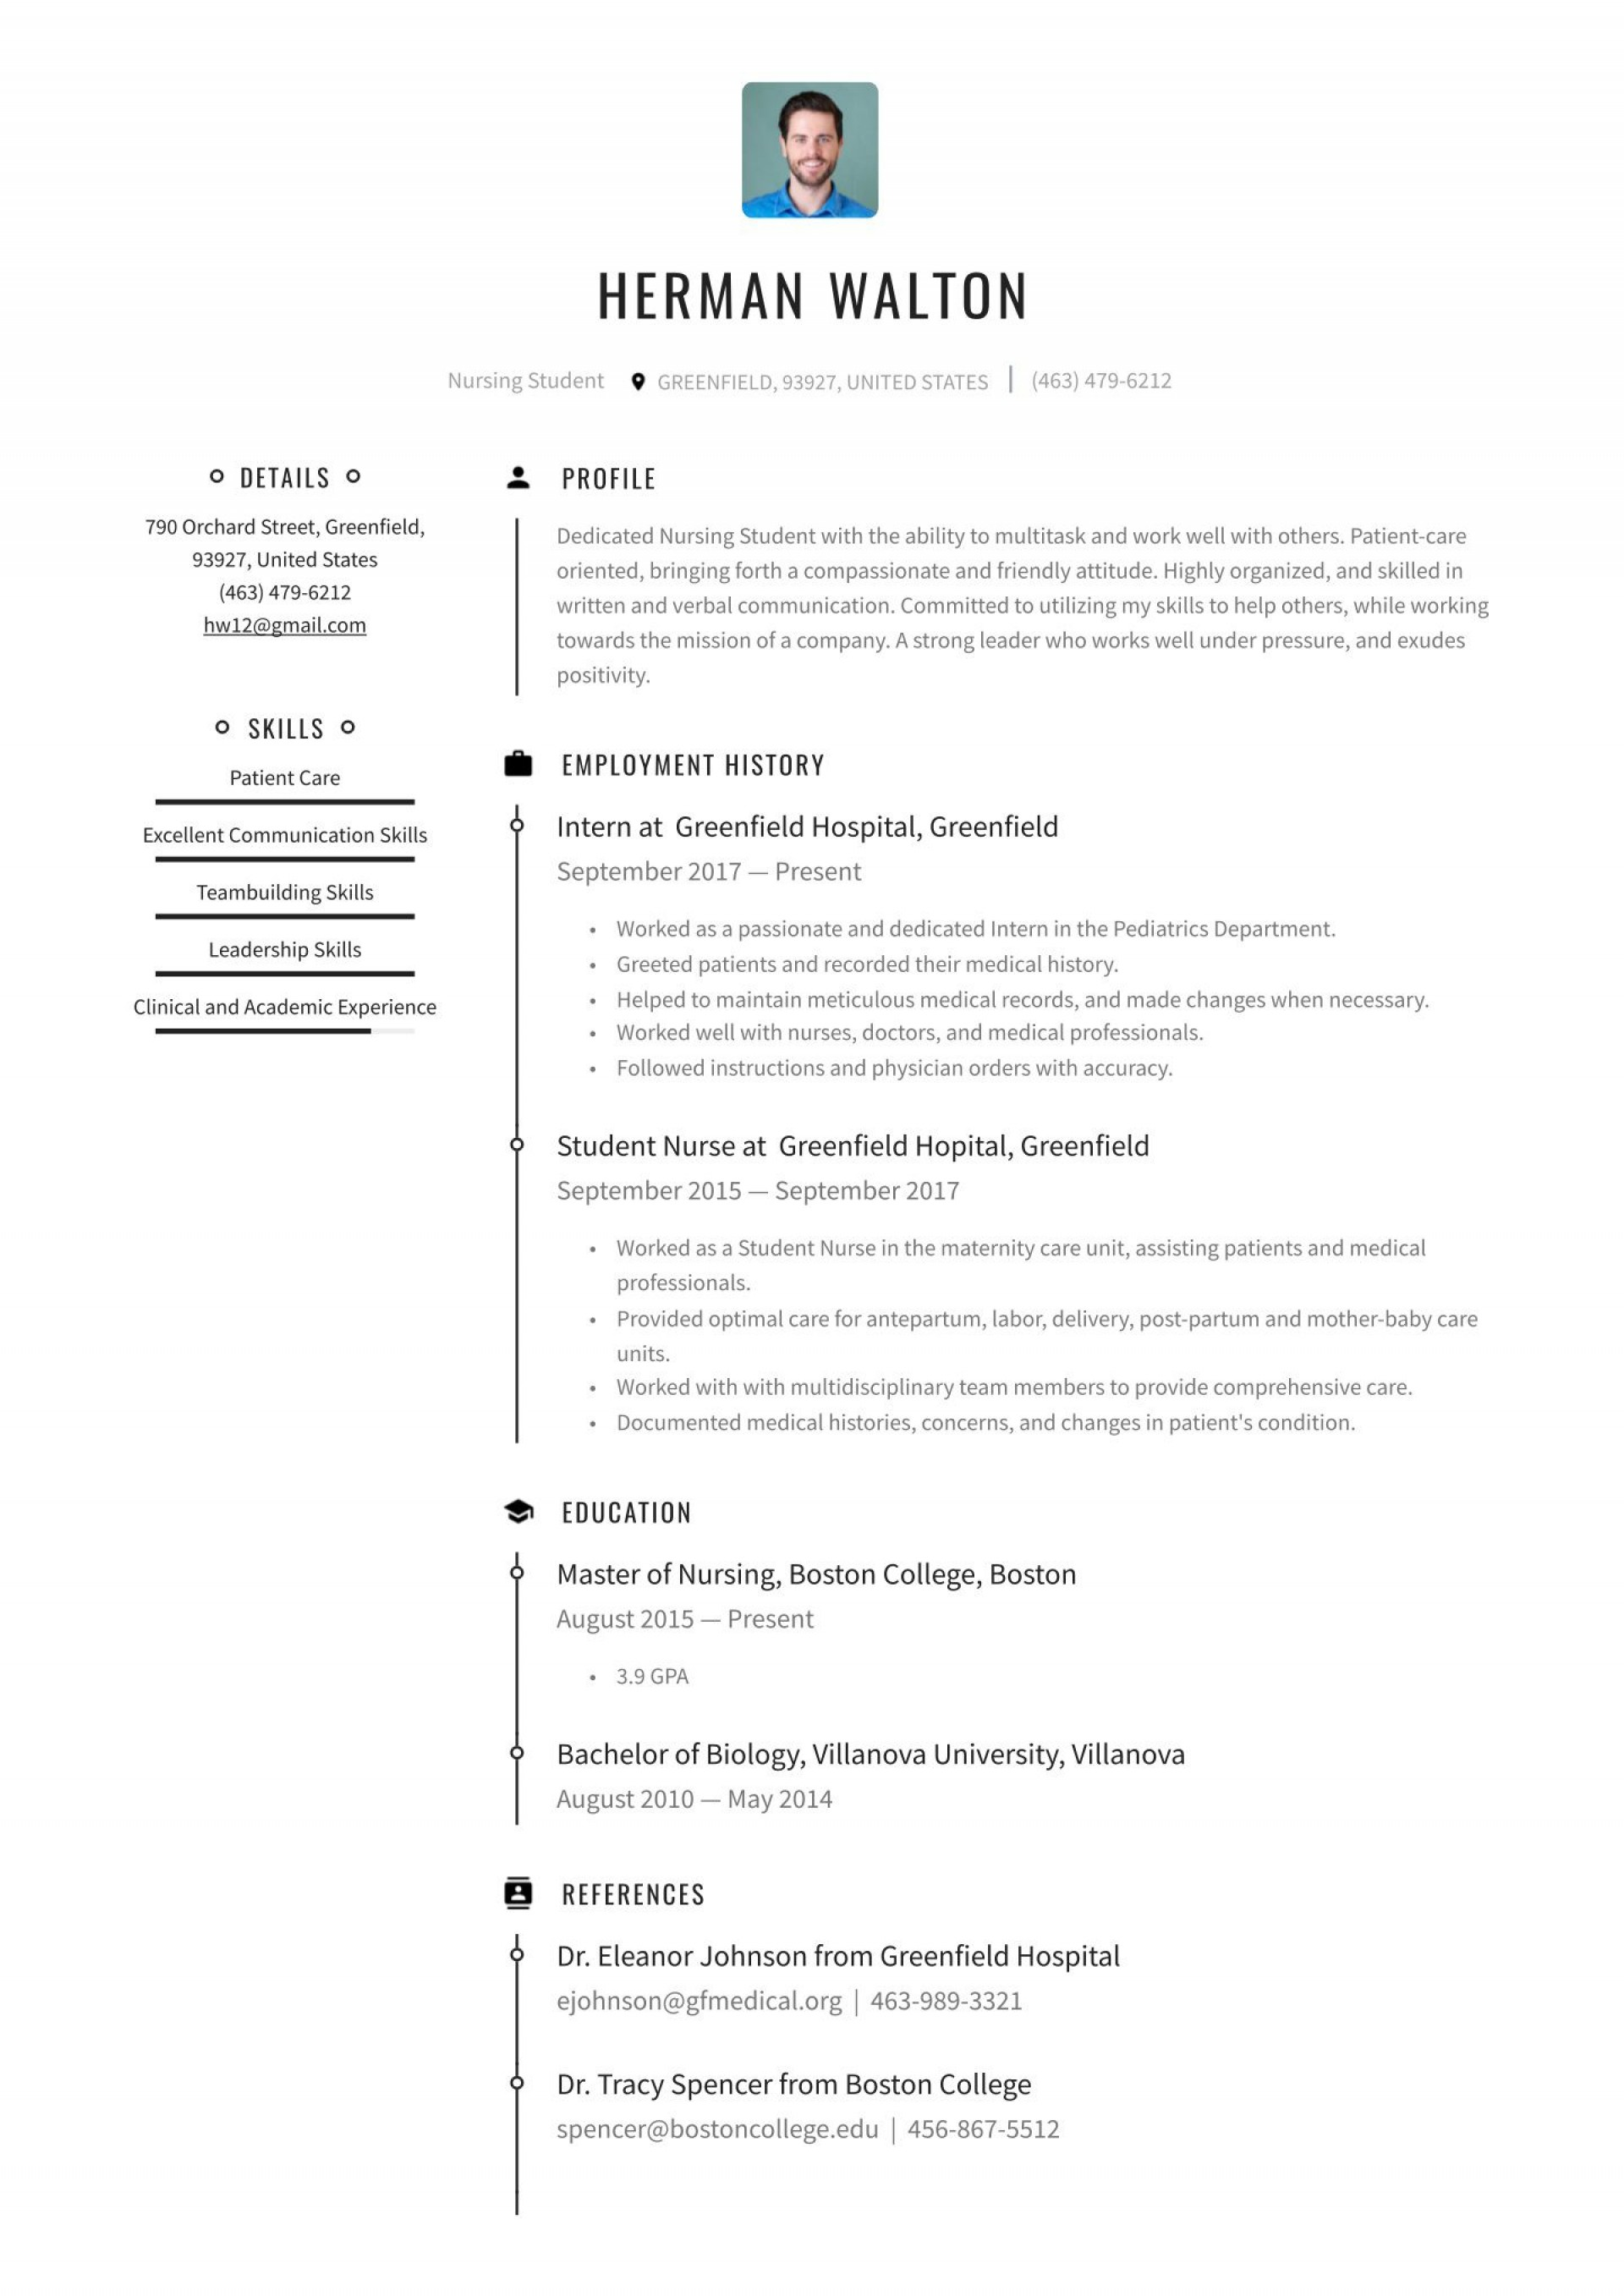 009 Awful Free Student Resume Template High Definition  Templates Microsoft Word Australia School1920